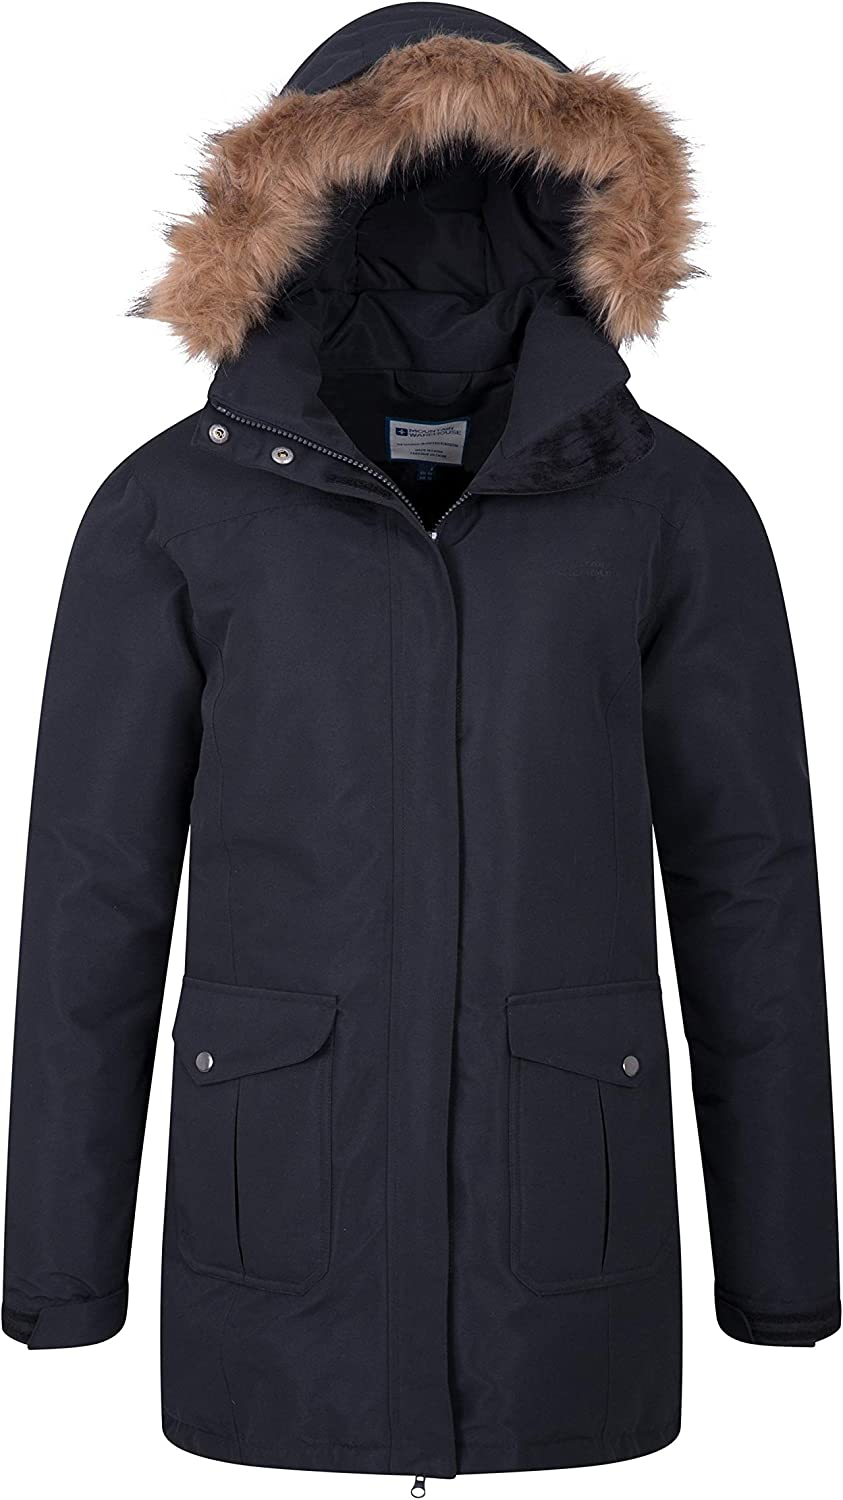 Ideal for Camping in Cold Weather Padded Coat Waterproof Fur Trim Hoodie Fleece Lining Ladies Coat Mountain Warehouse Tarka Womens Winter Jacket -Long